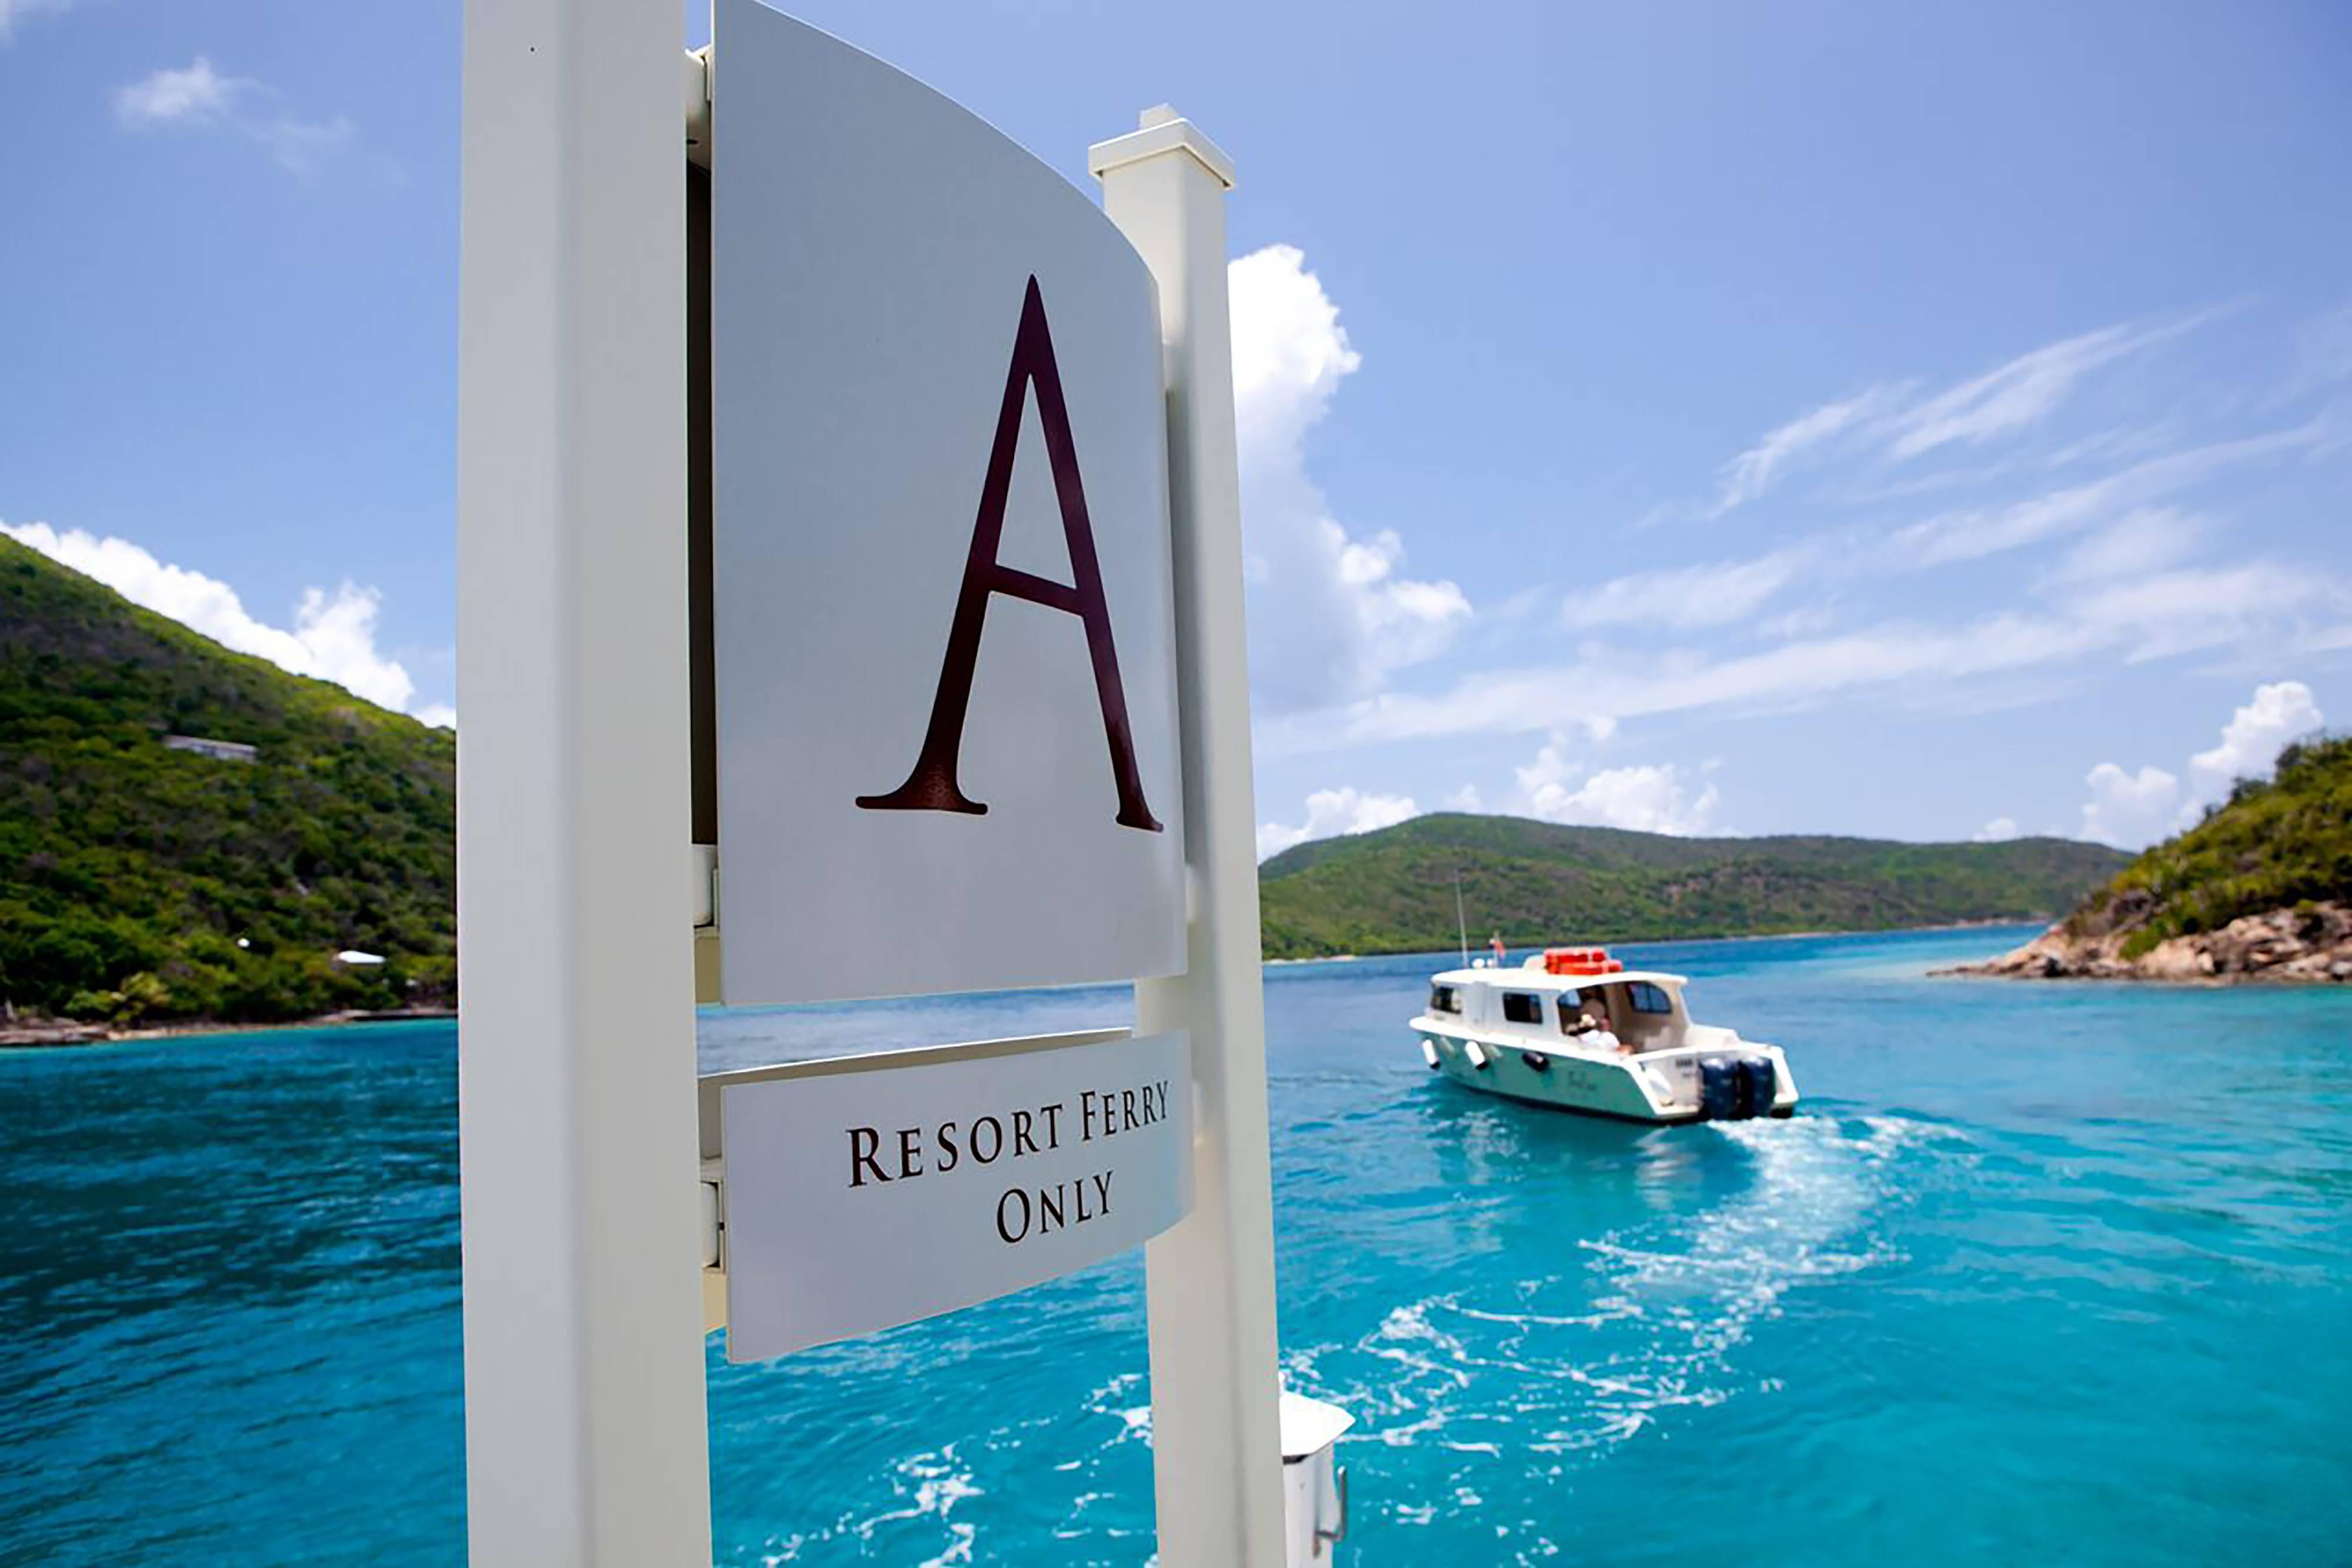 Ferry del resort en Scrub Island